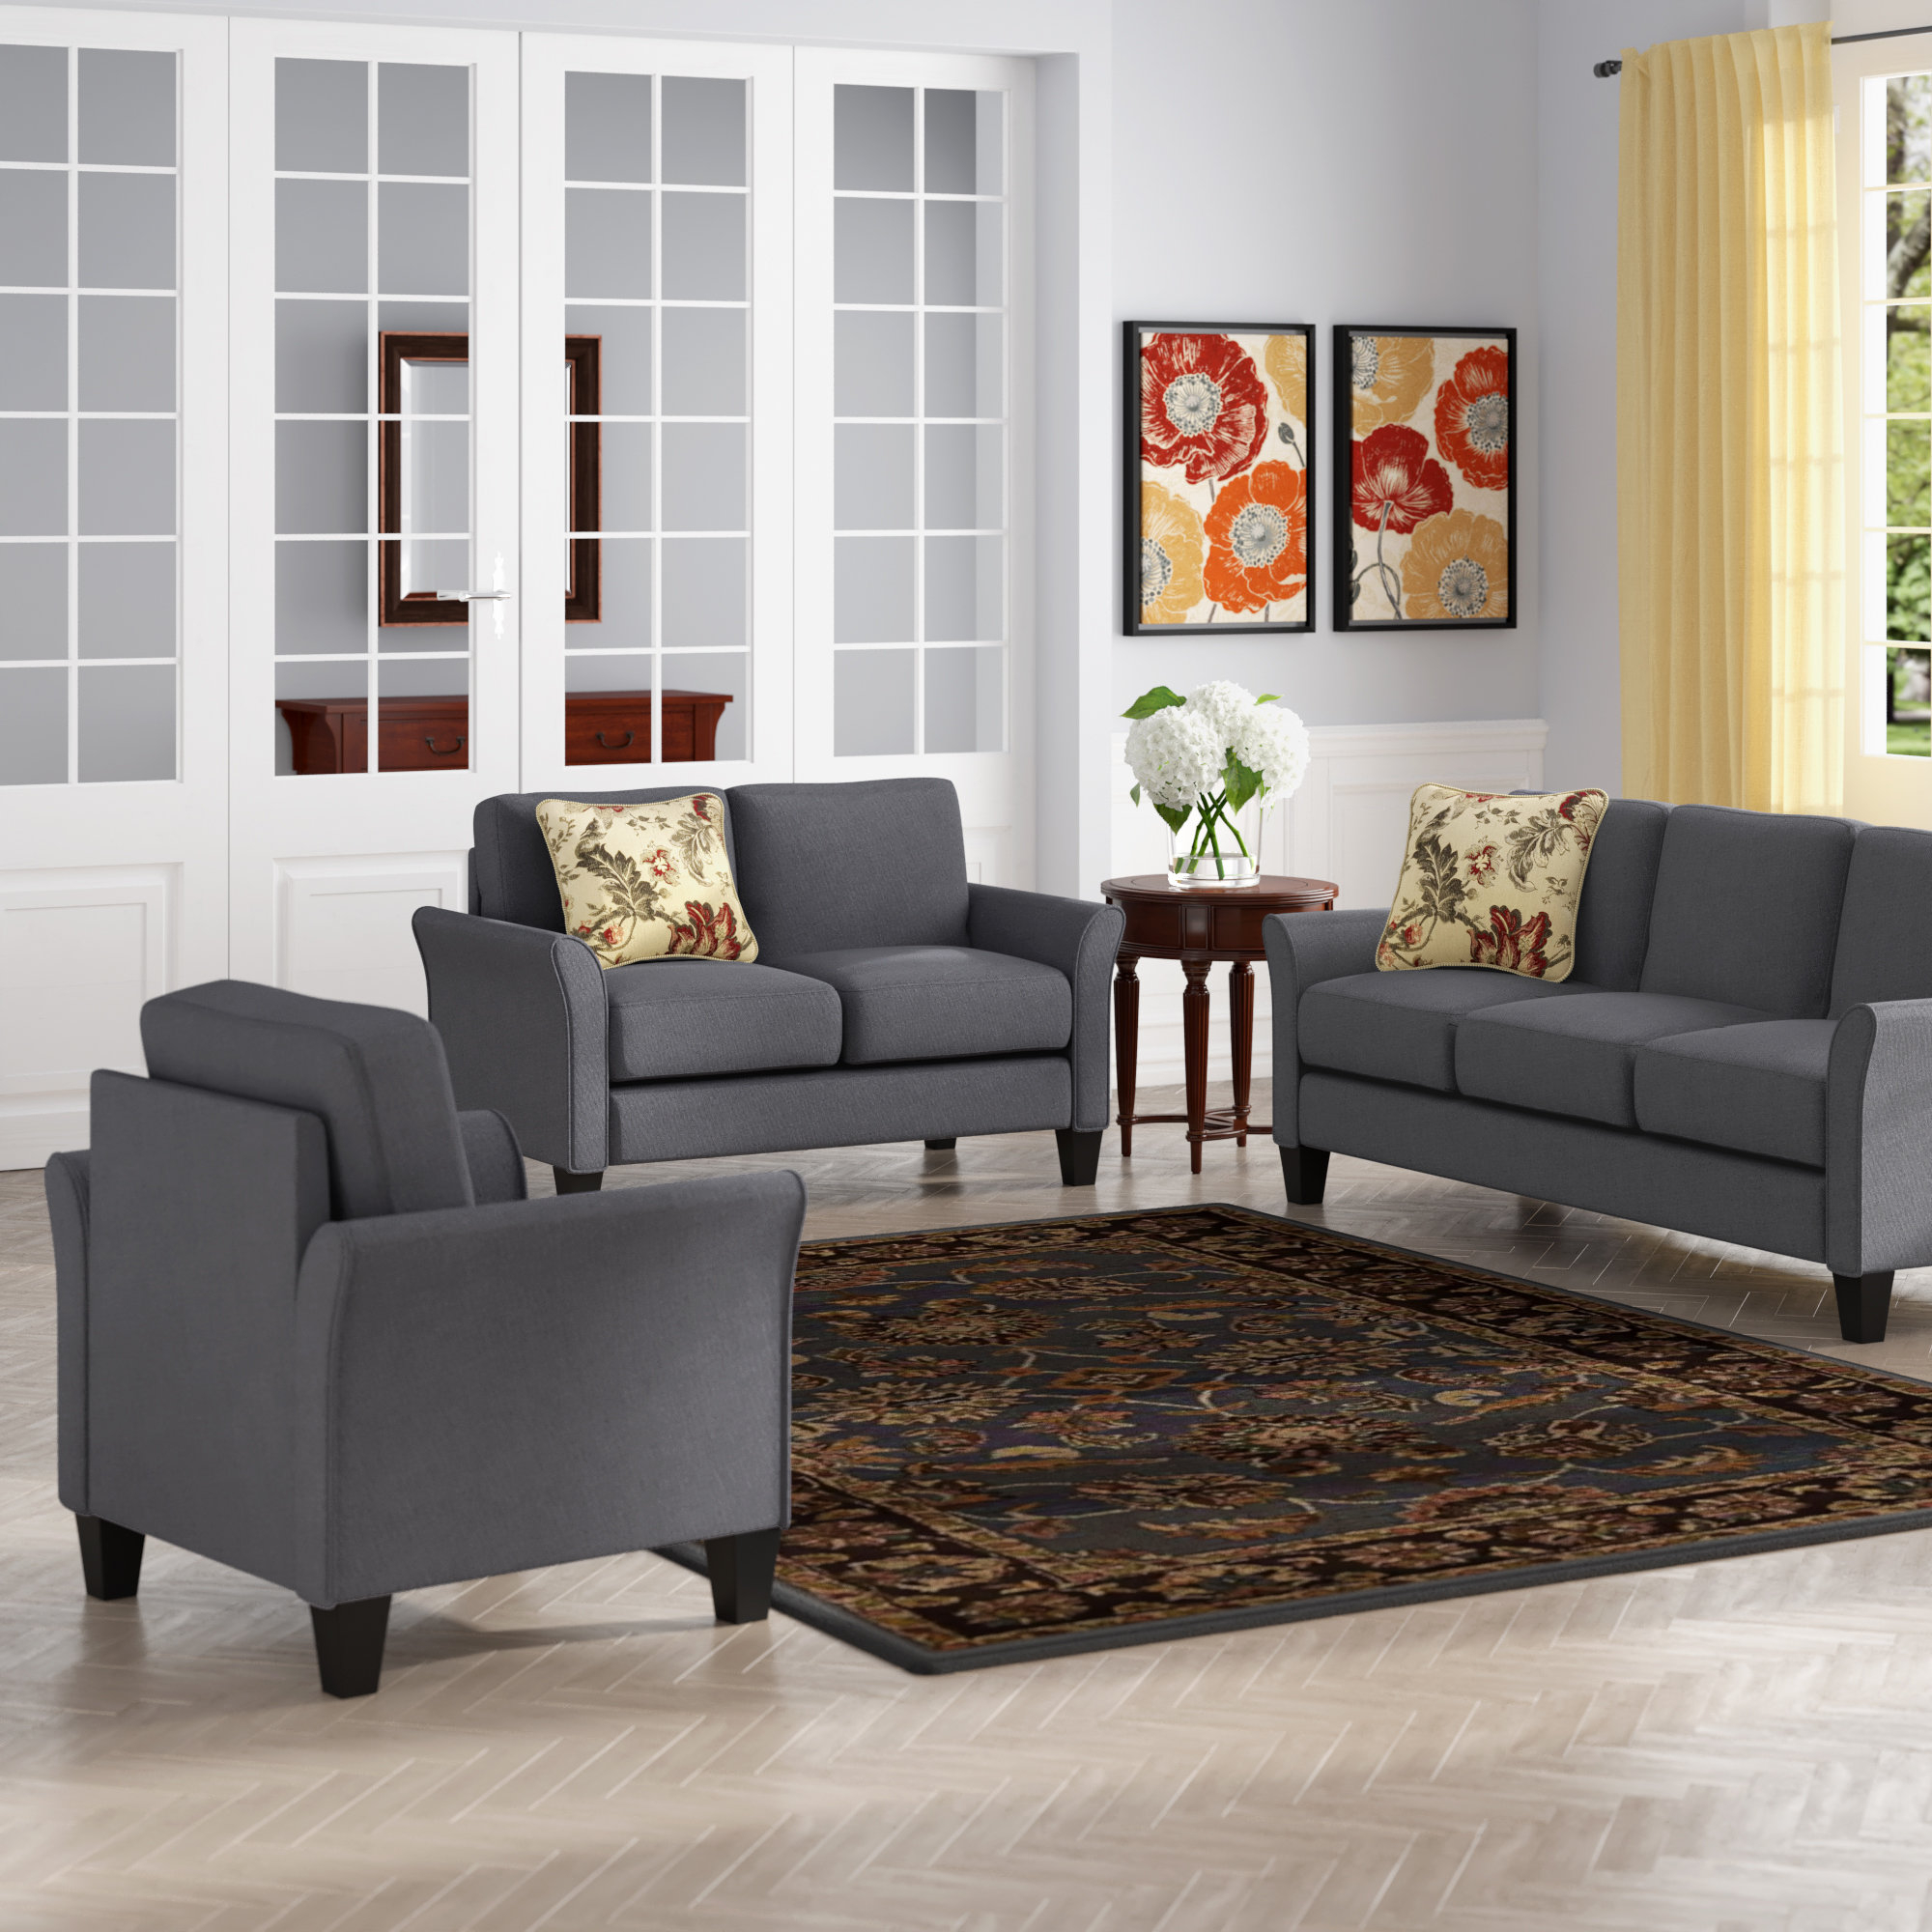 Red Barrel Studio Galvez 3 Piece Living Room Set Reviews Wayfair throughout 11 Some of the Coolest Ideas How to Craft Living Room Sets For Cheap